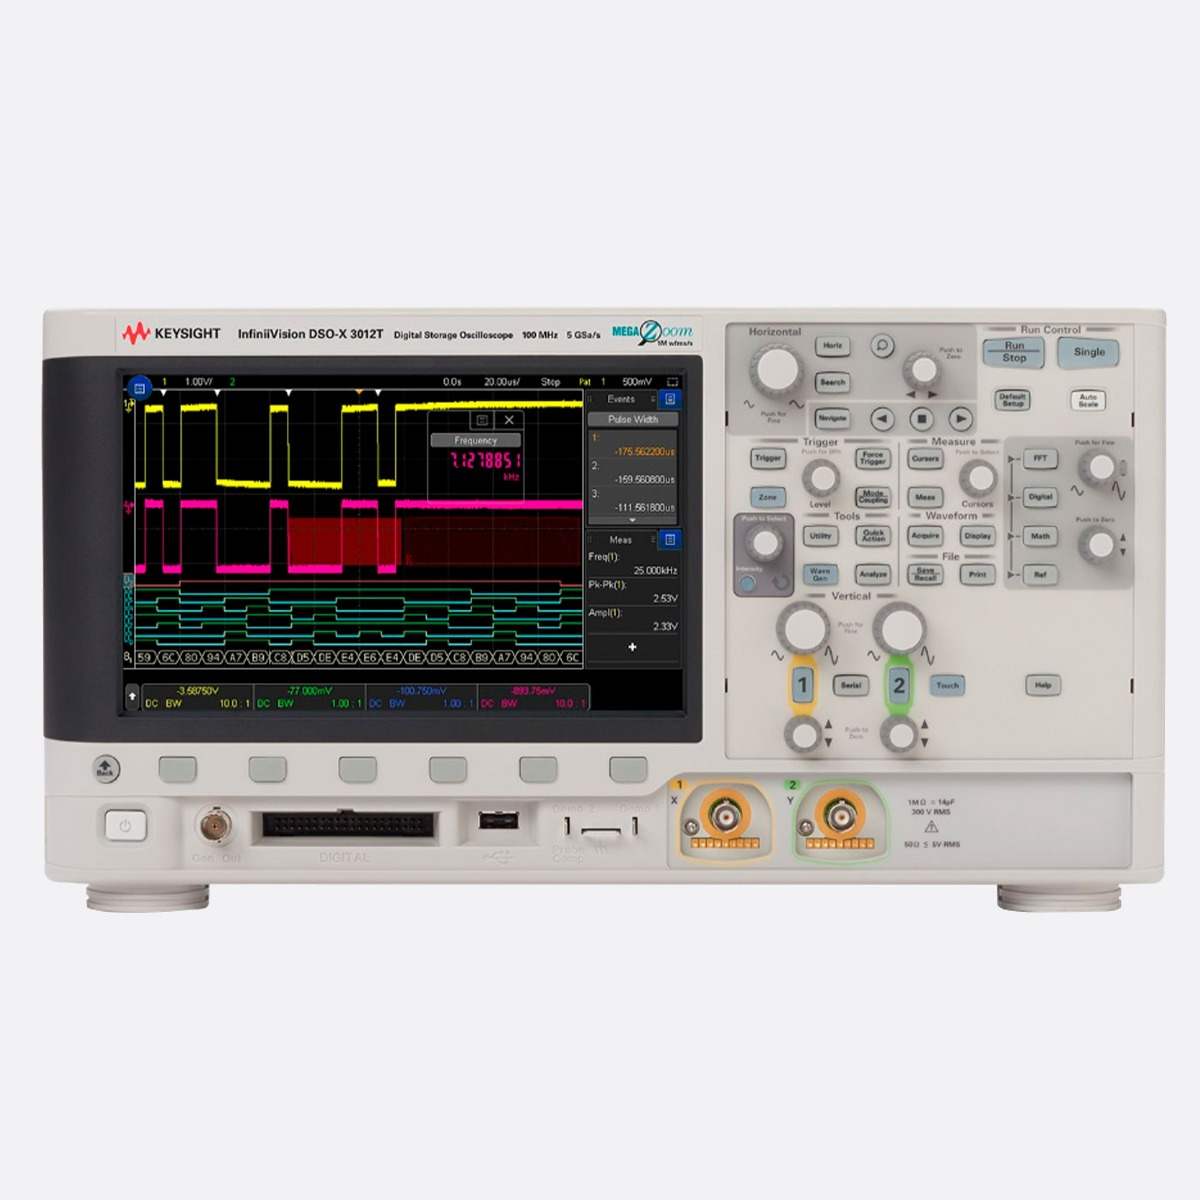 Keysight_DSOX3012T_Front_Ccontrols